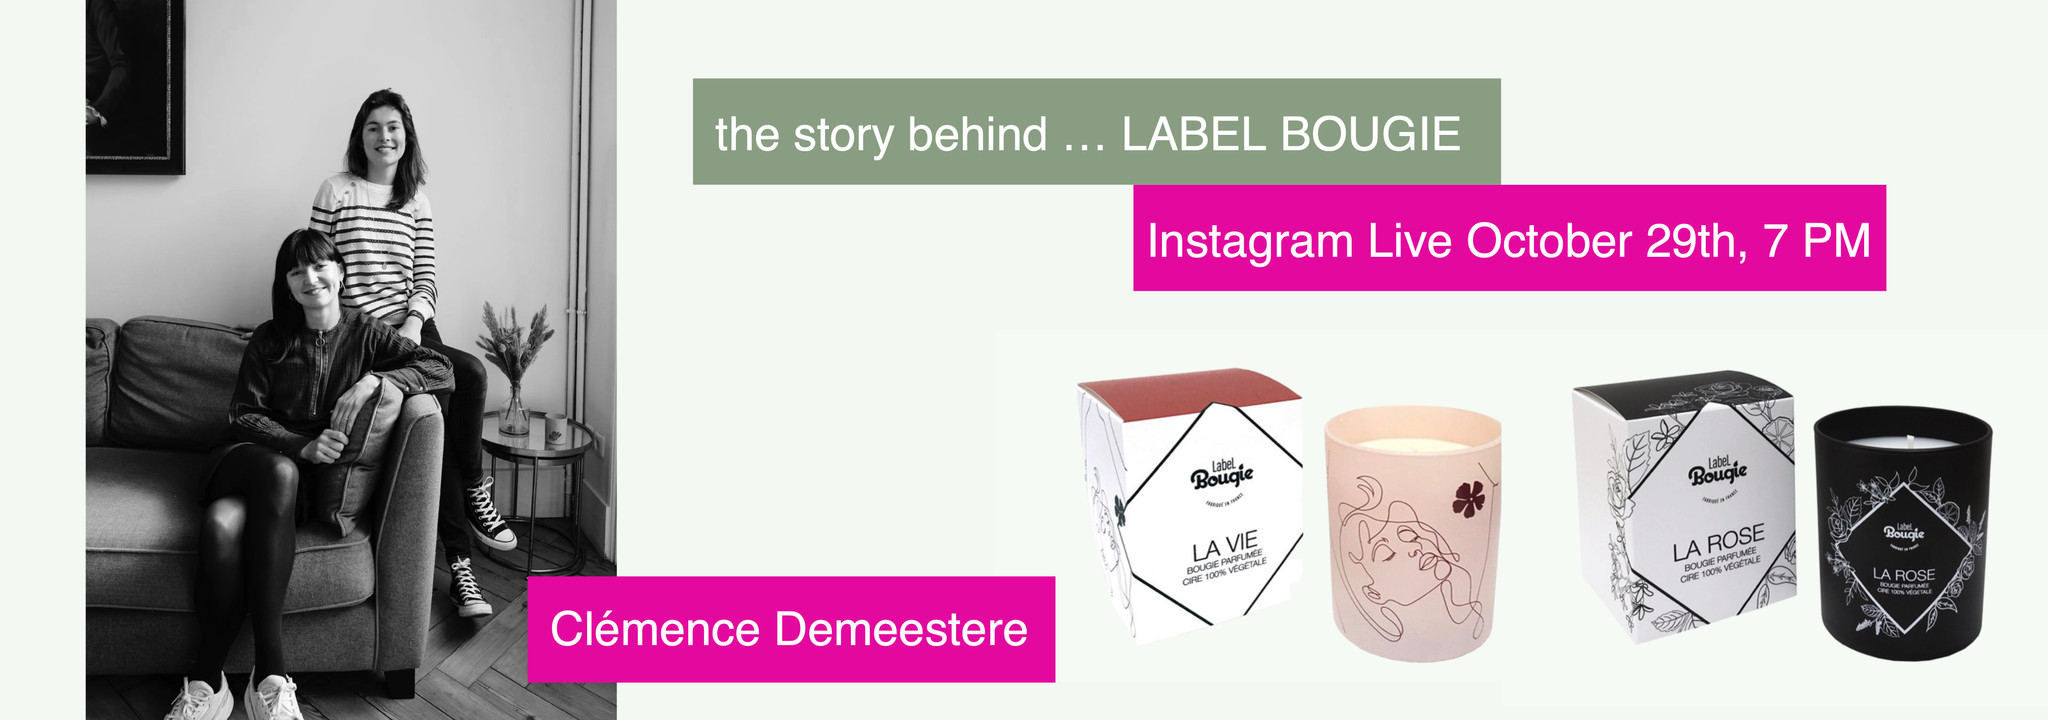 The story behind ... LABEL BOUGIE